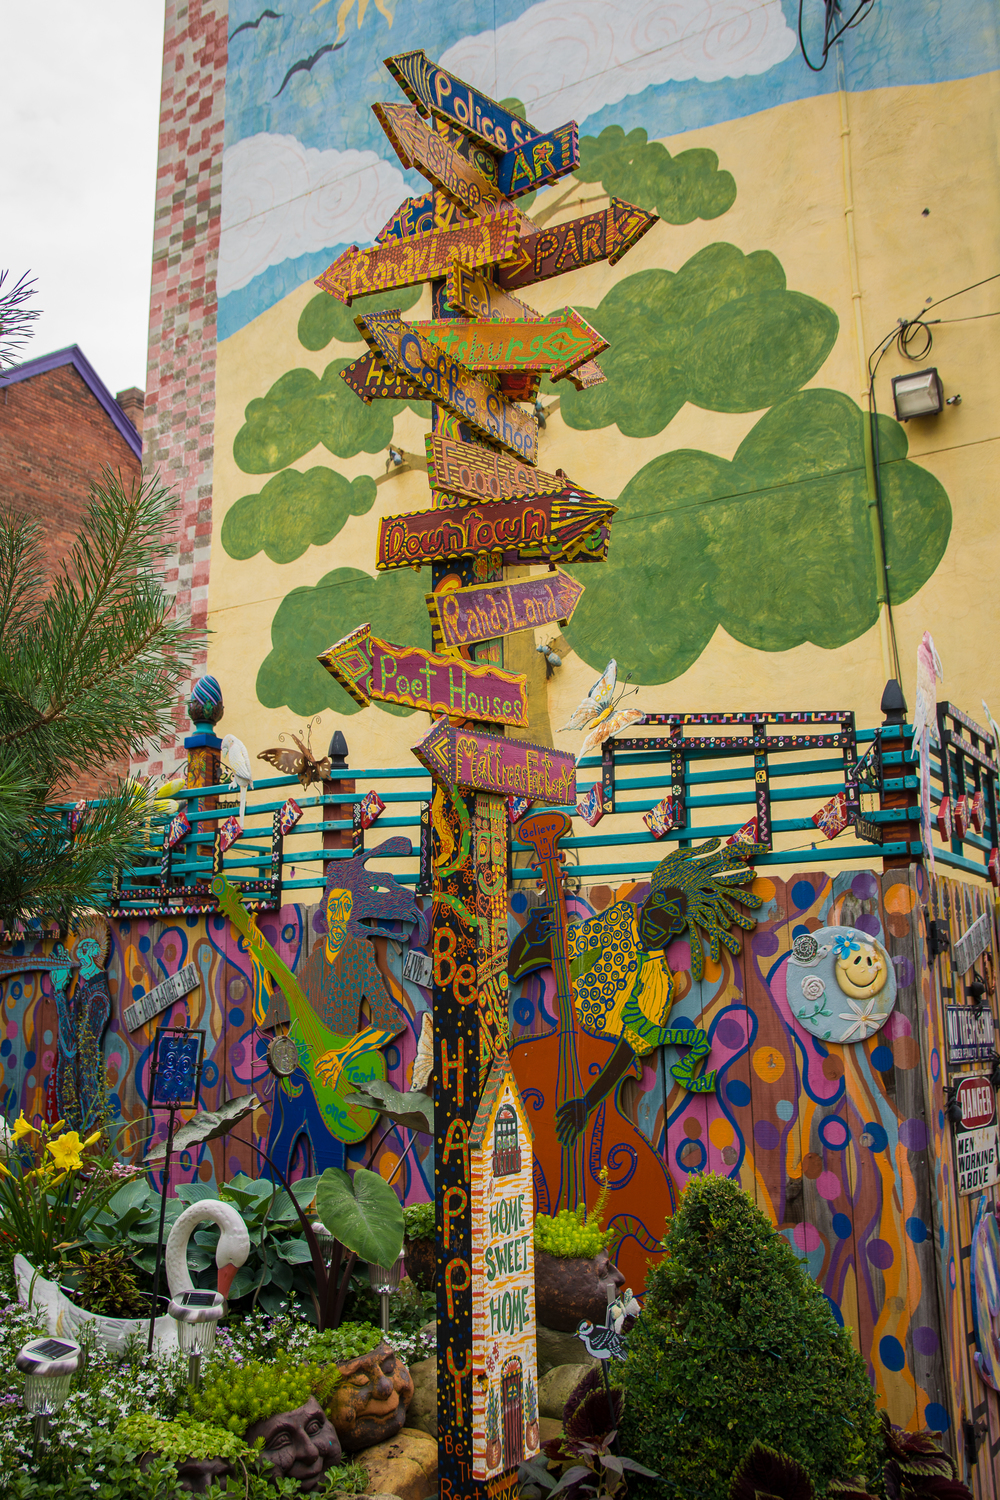 All roads lead to Randyland.